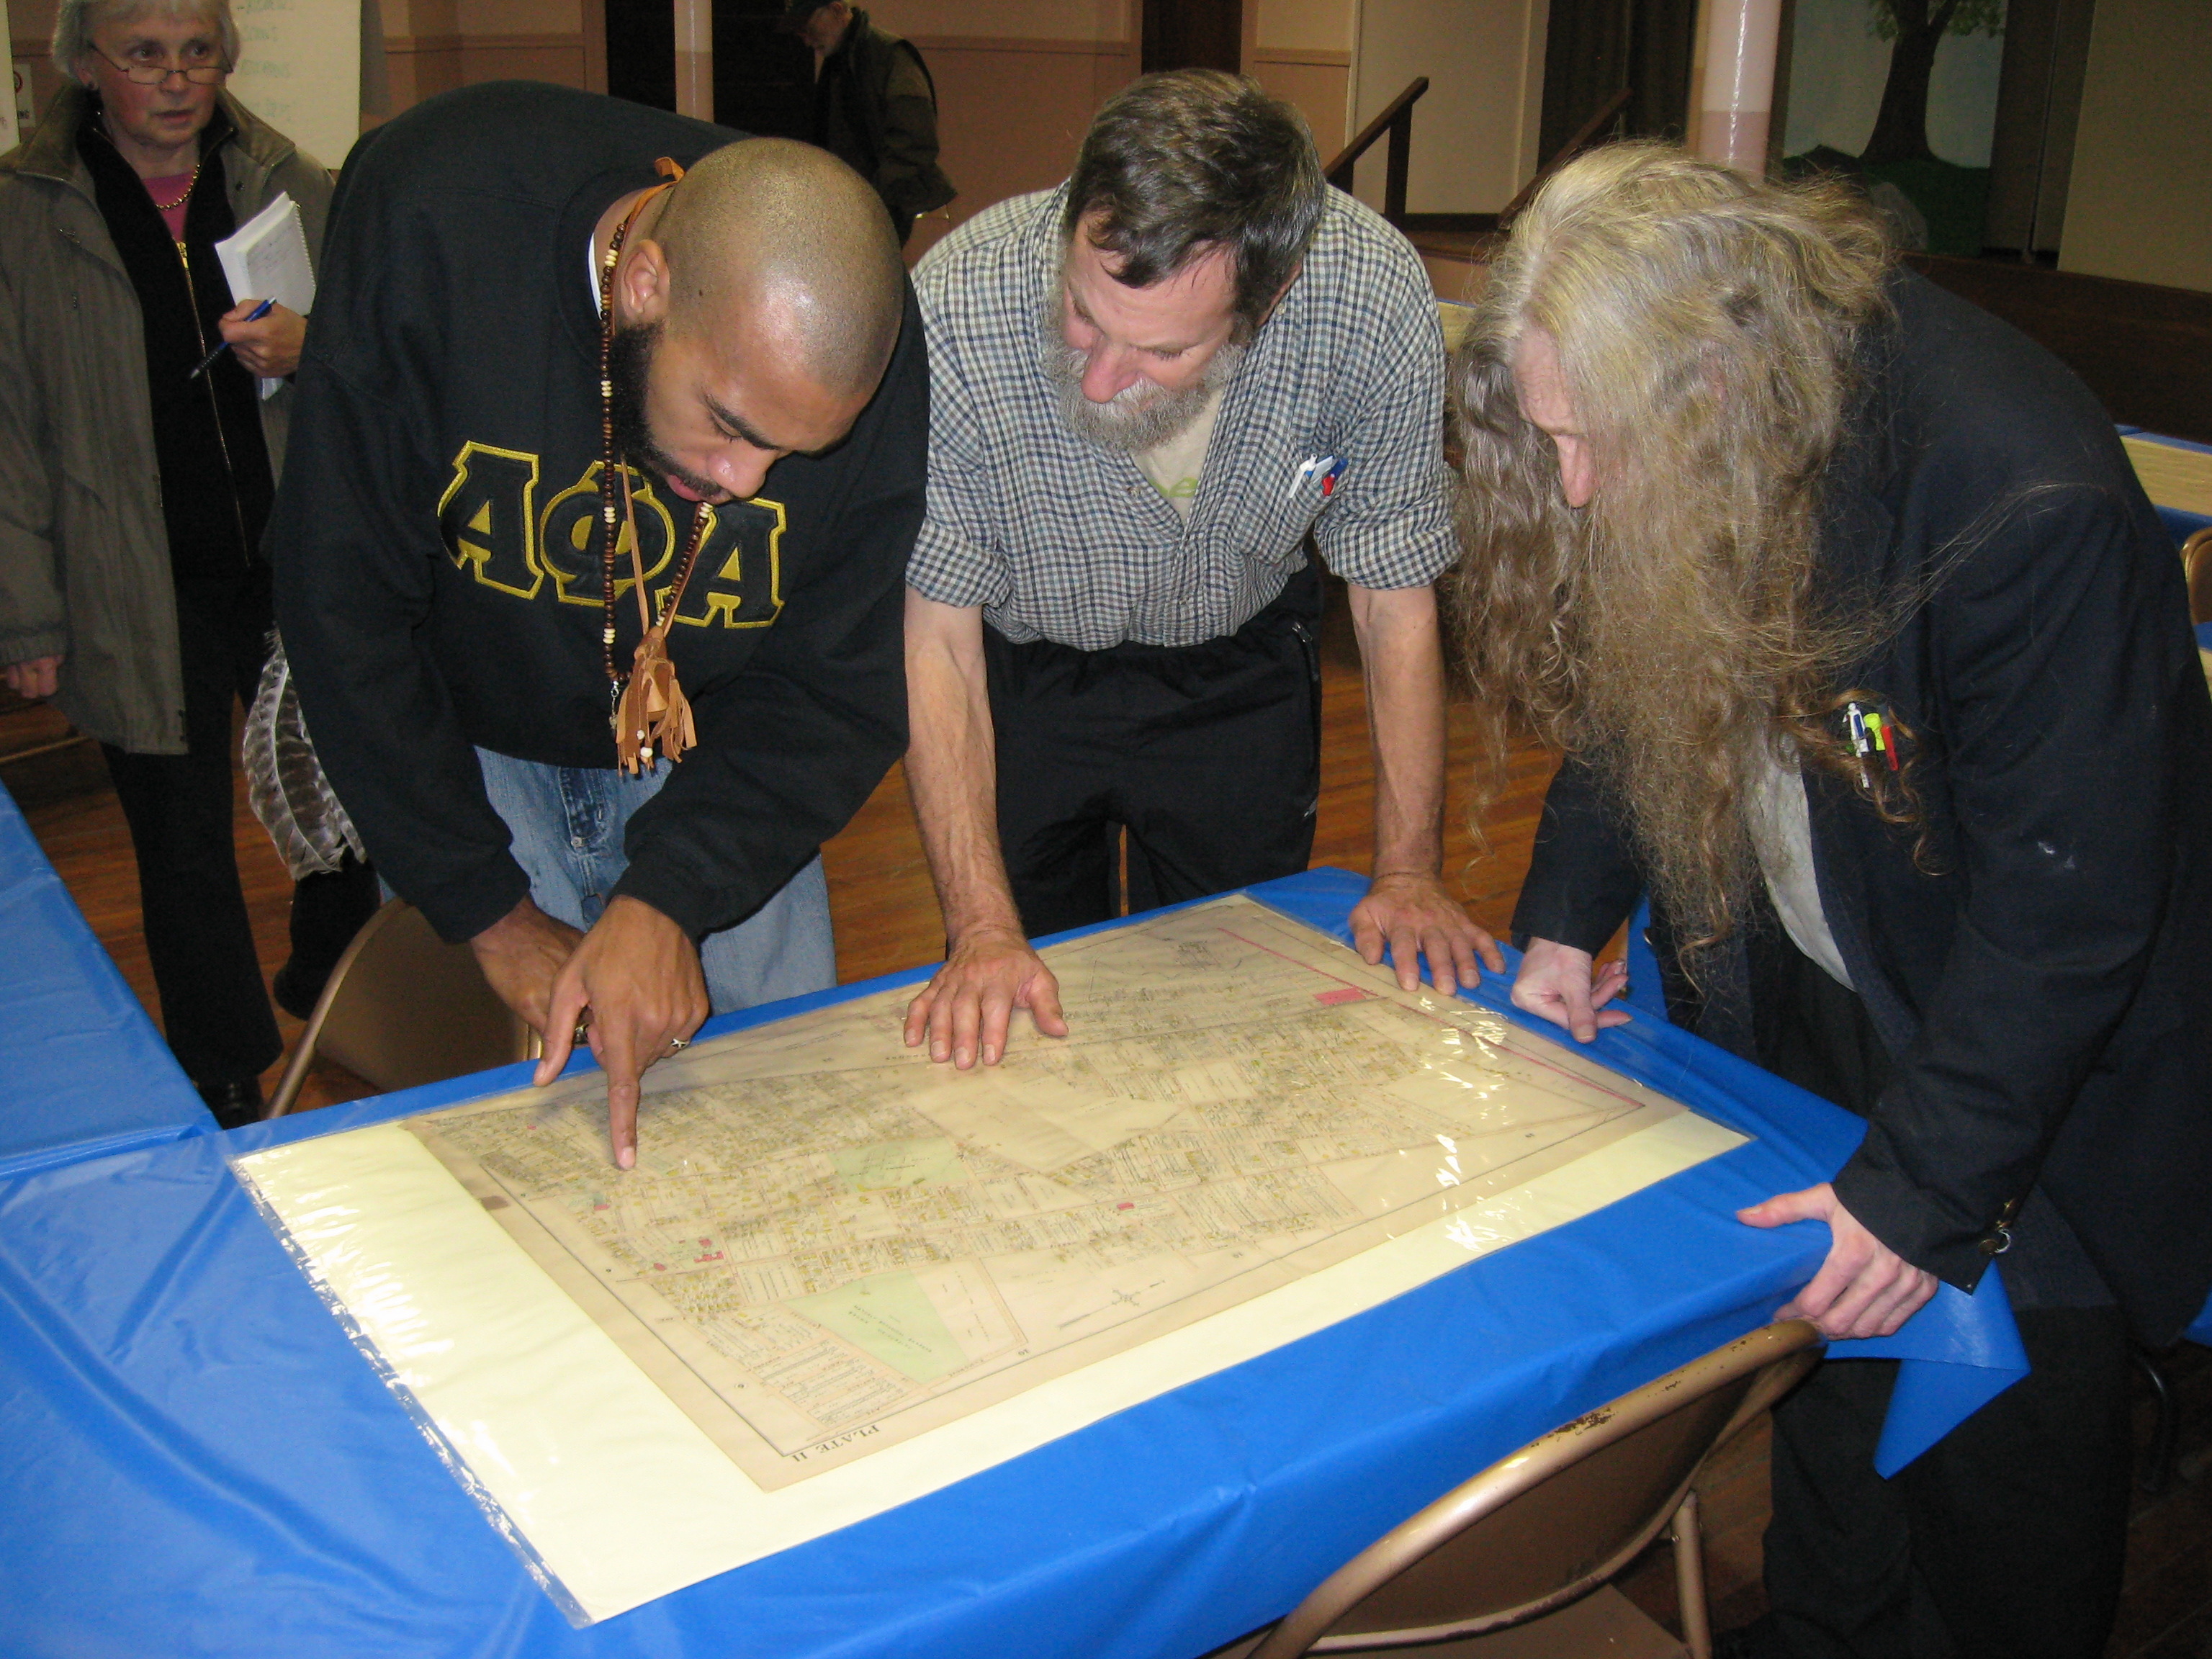 Ray Watson, Greg Gerritt and David Kolsky find their bearings on an insurance map from the early 20th century.